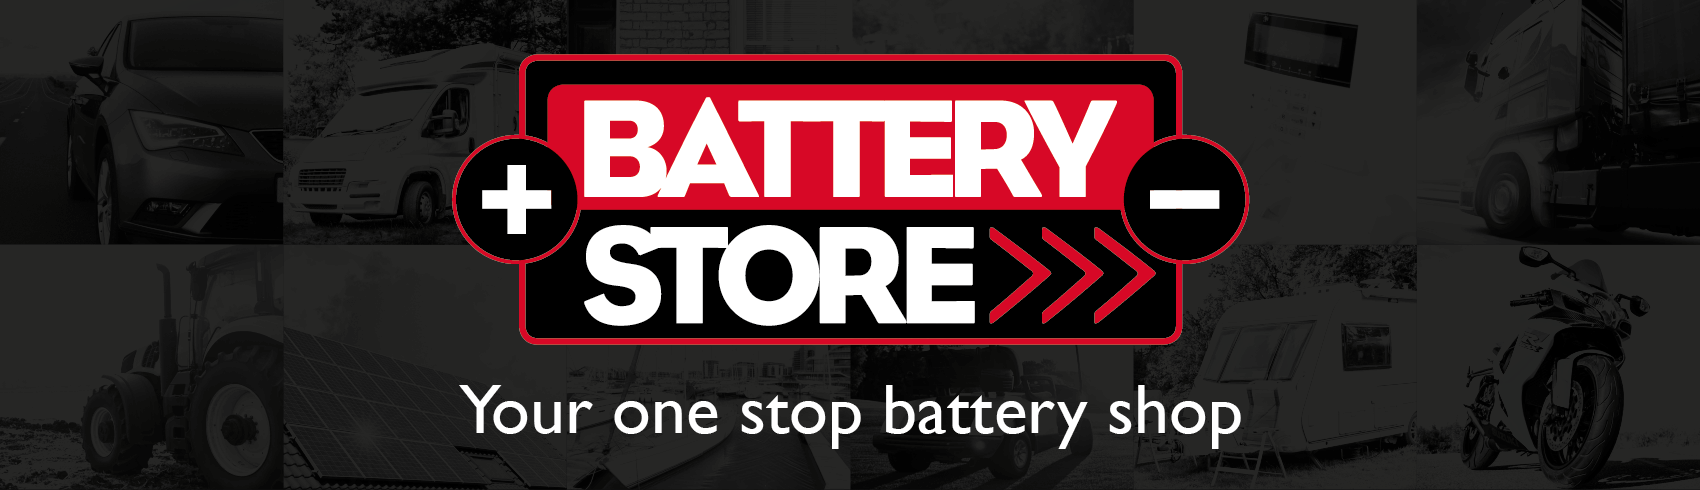 Battery Store - Your One Stop Battery Shop